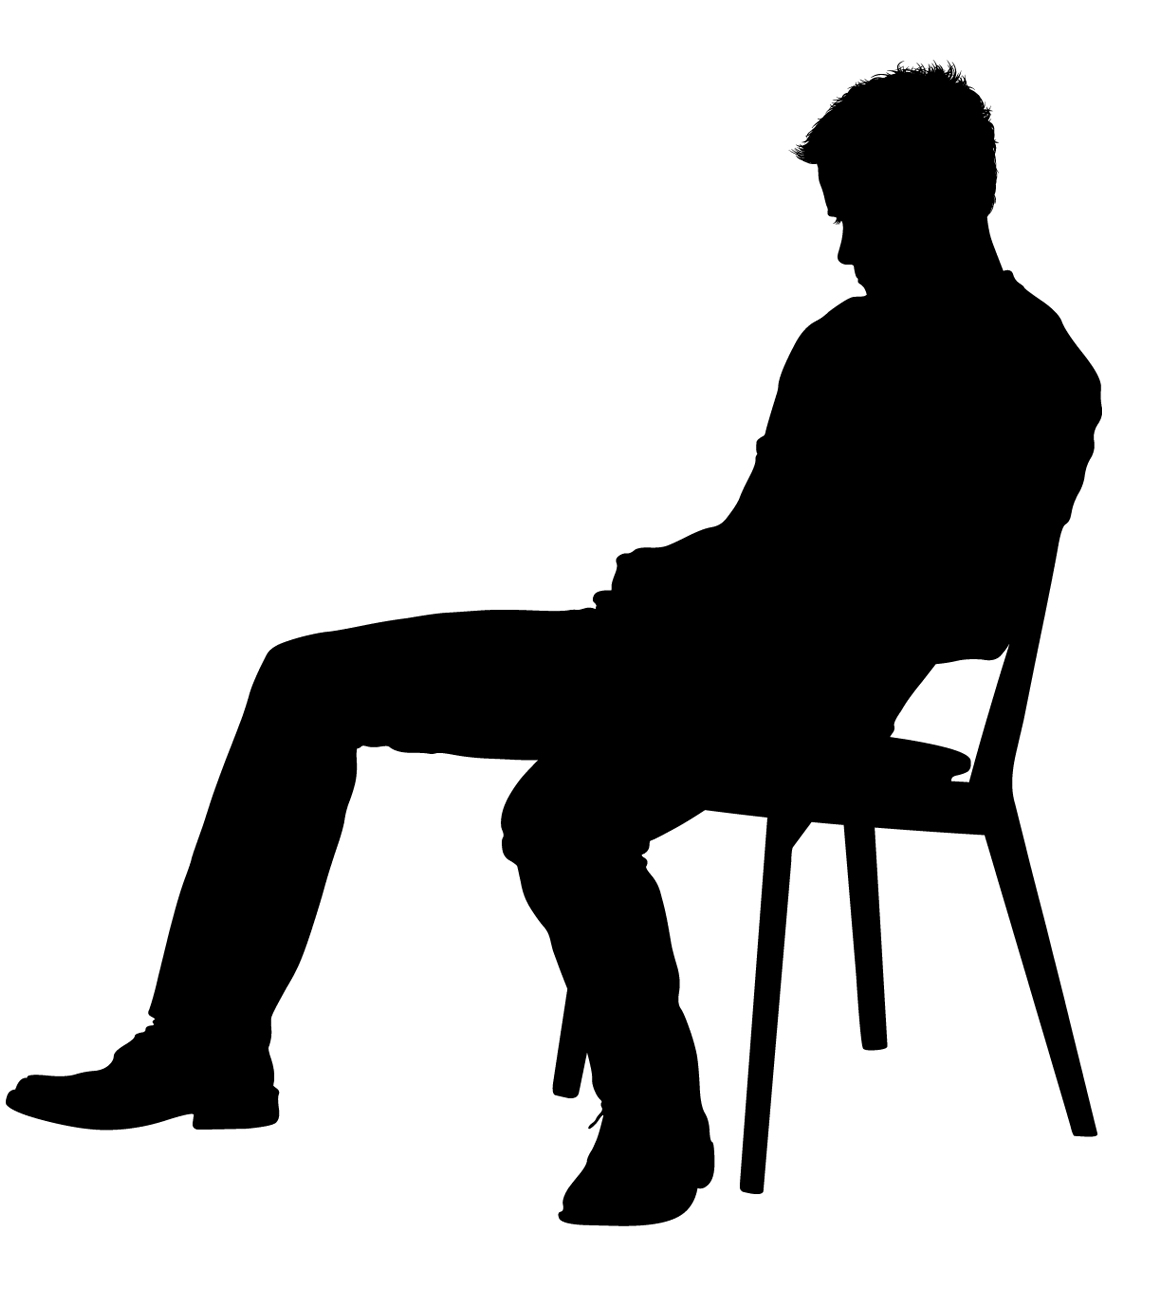 silhouette of a person sitting silhouette person sitting on chair png free transparent person a sitting of silhouette